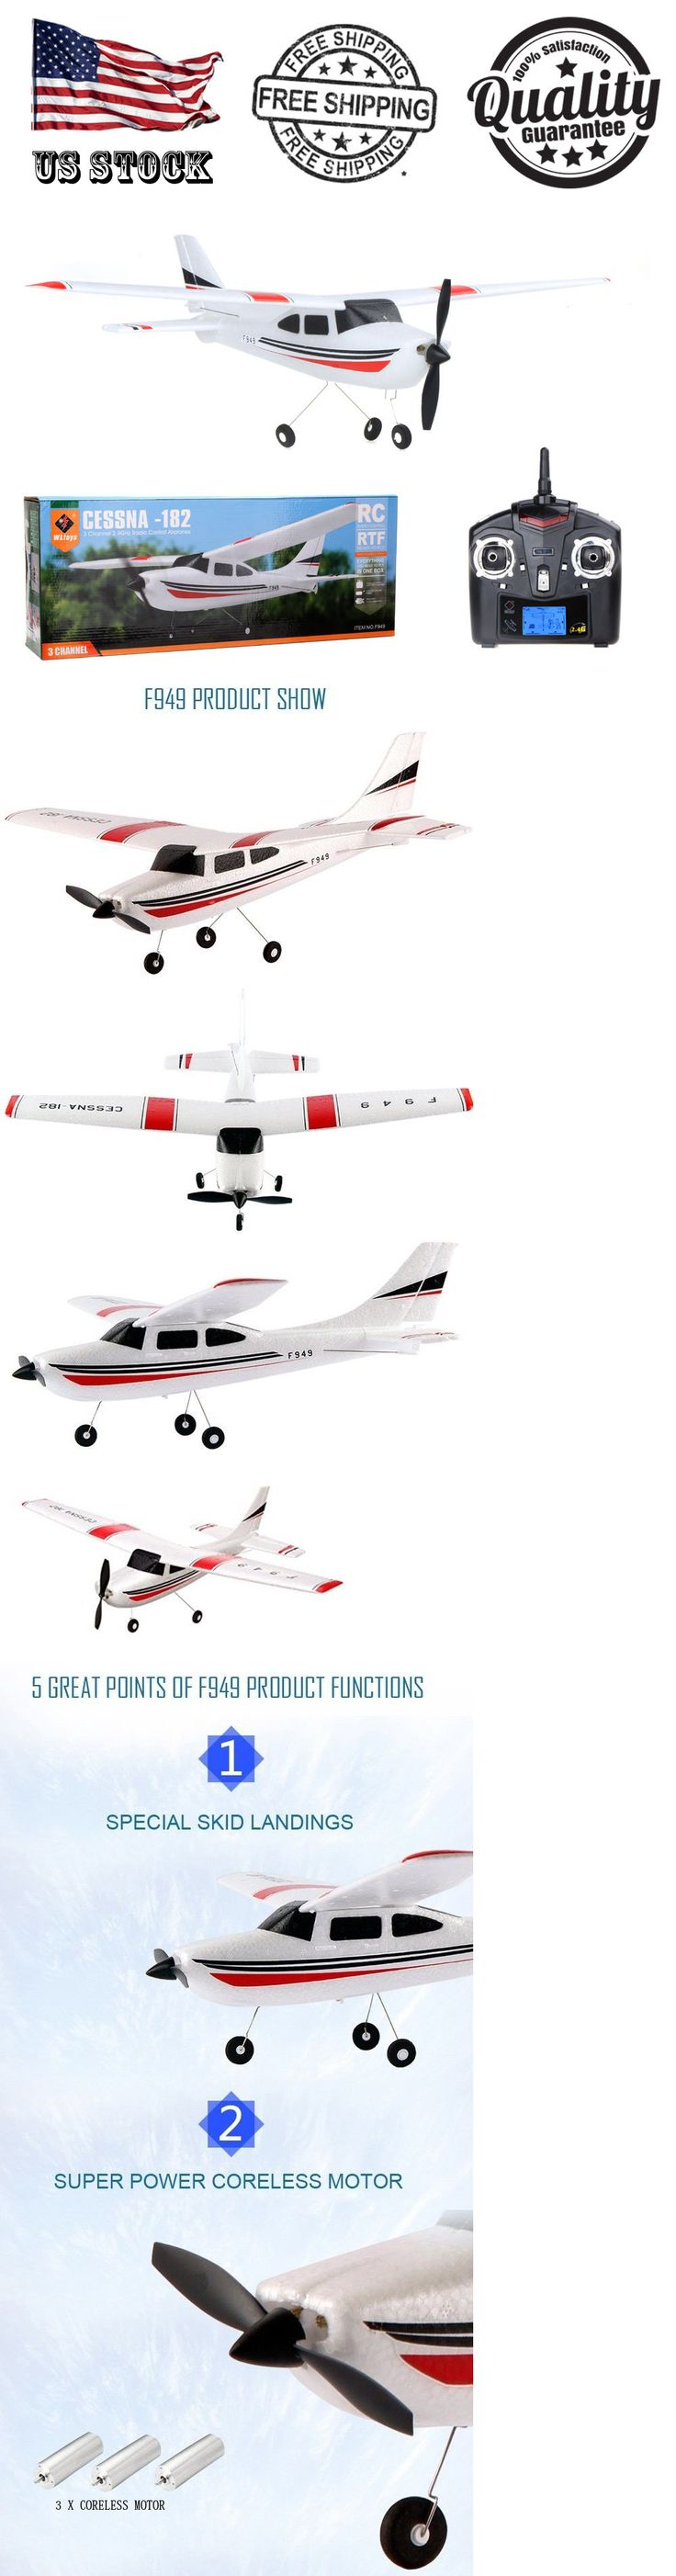 Airplanes 182182: Wltoys Goolrc F949 2.4G 3Ch Rc Airplane Fixed Wing Plane Outdoor Plane Toys New -> BUY IT NOW ONLY: $49.99 on eBay!